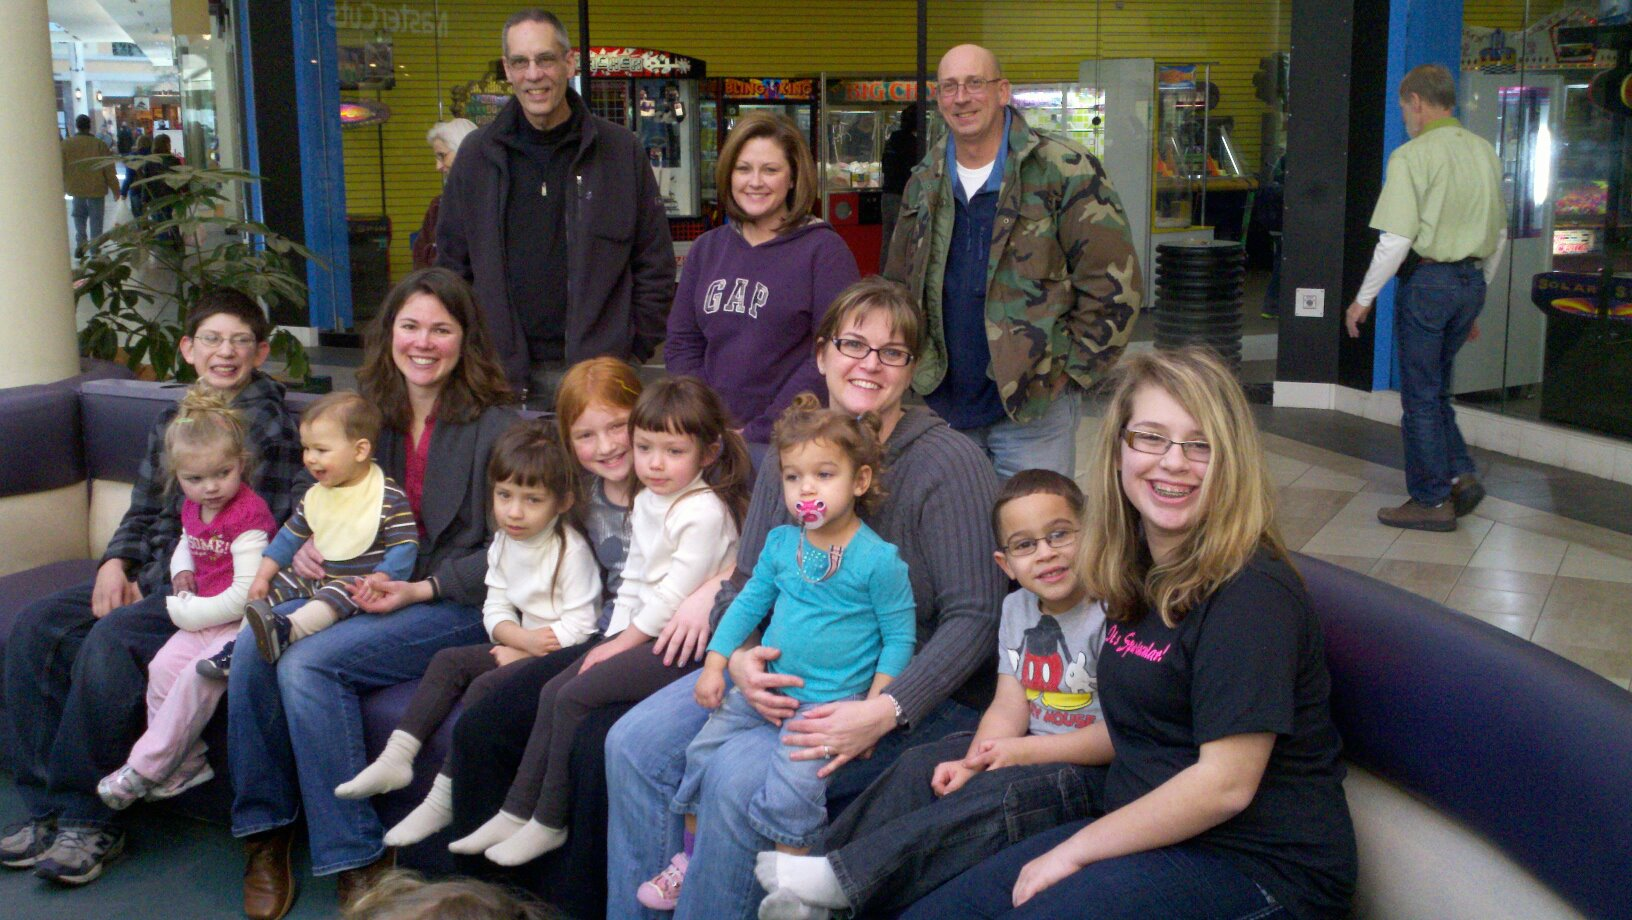 CHASA Central Illinois Meetup and Playdate – Kids with Hemiplegia